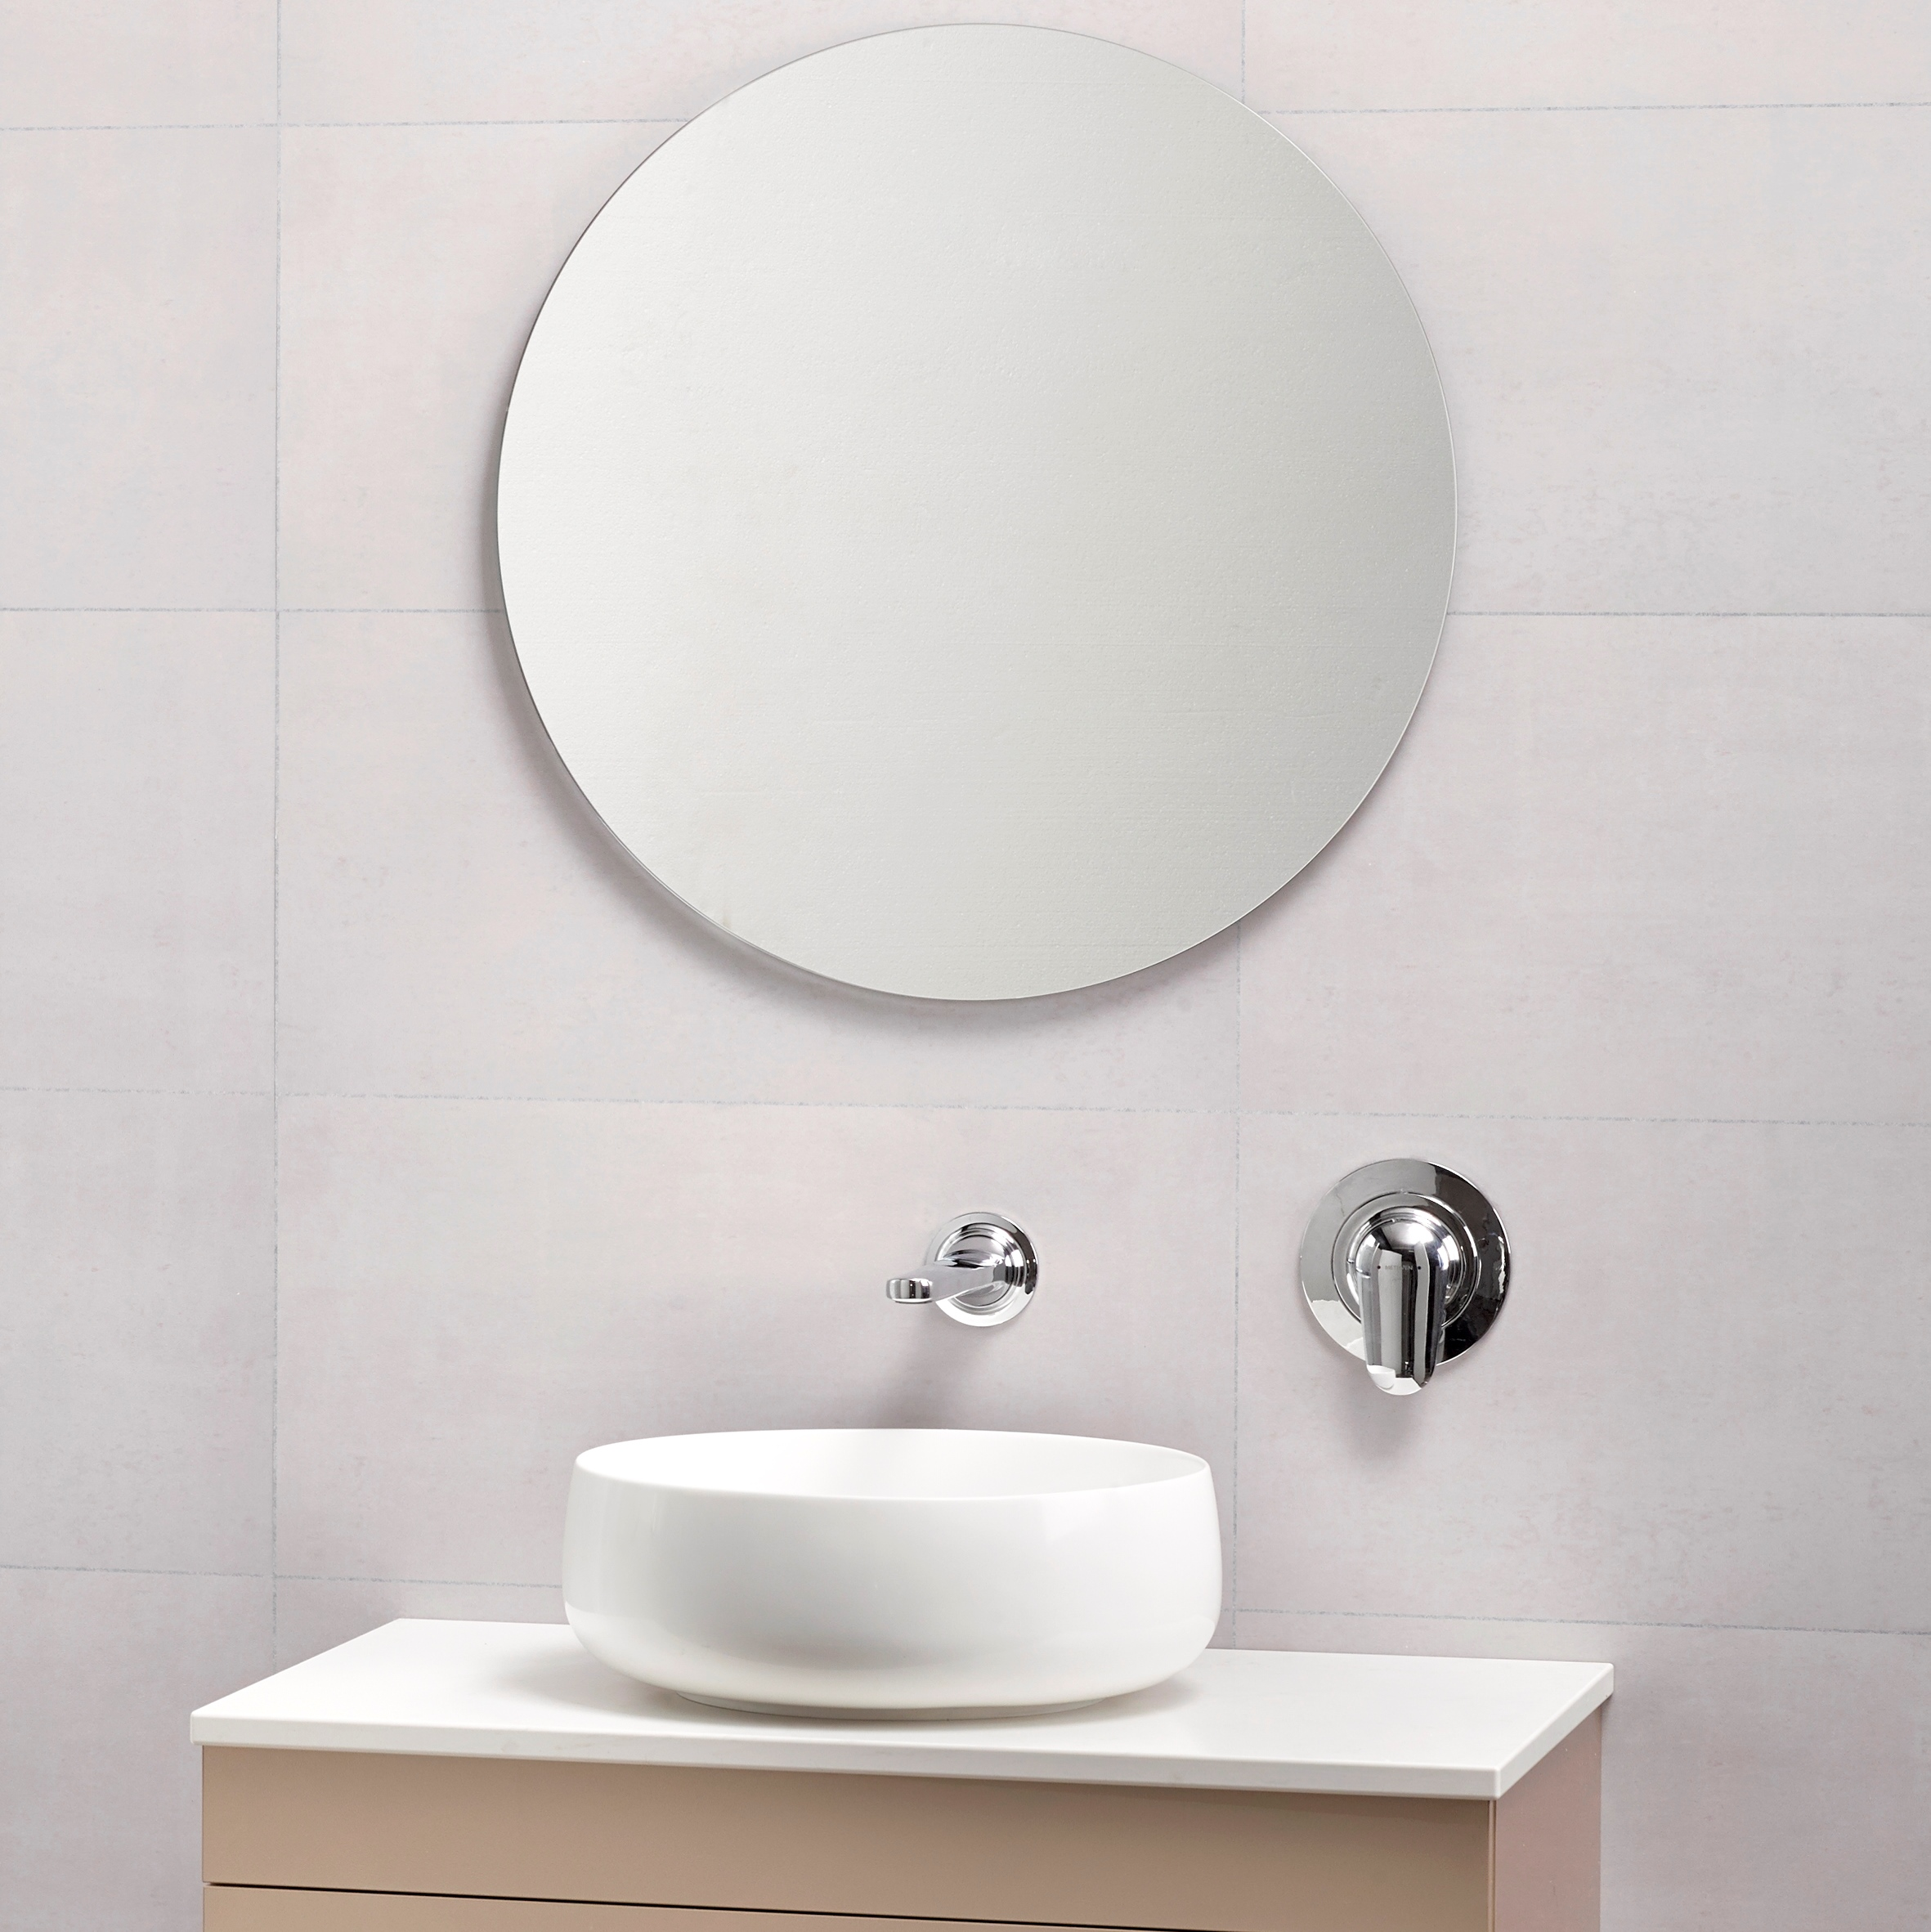 21 Luxury Bathroom Mirrors Nz